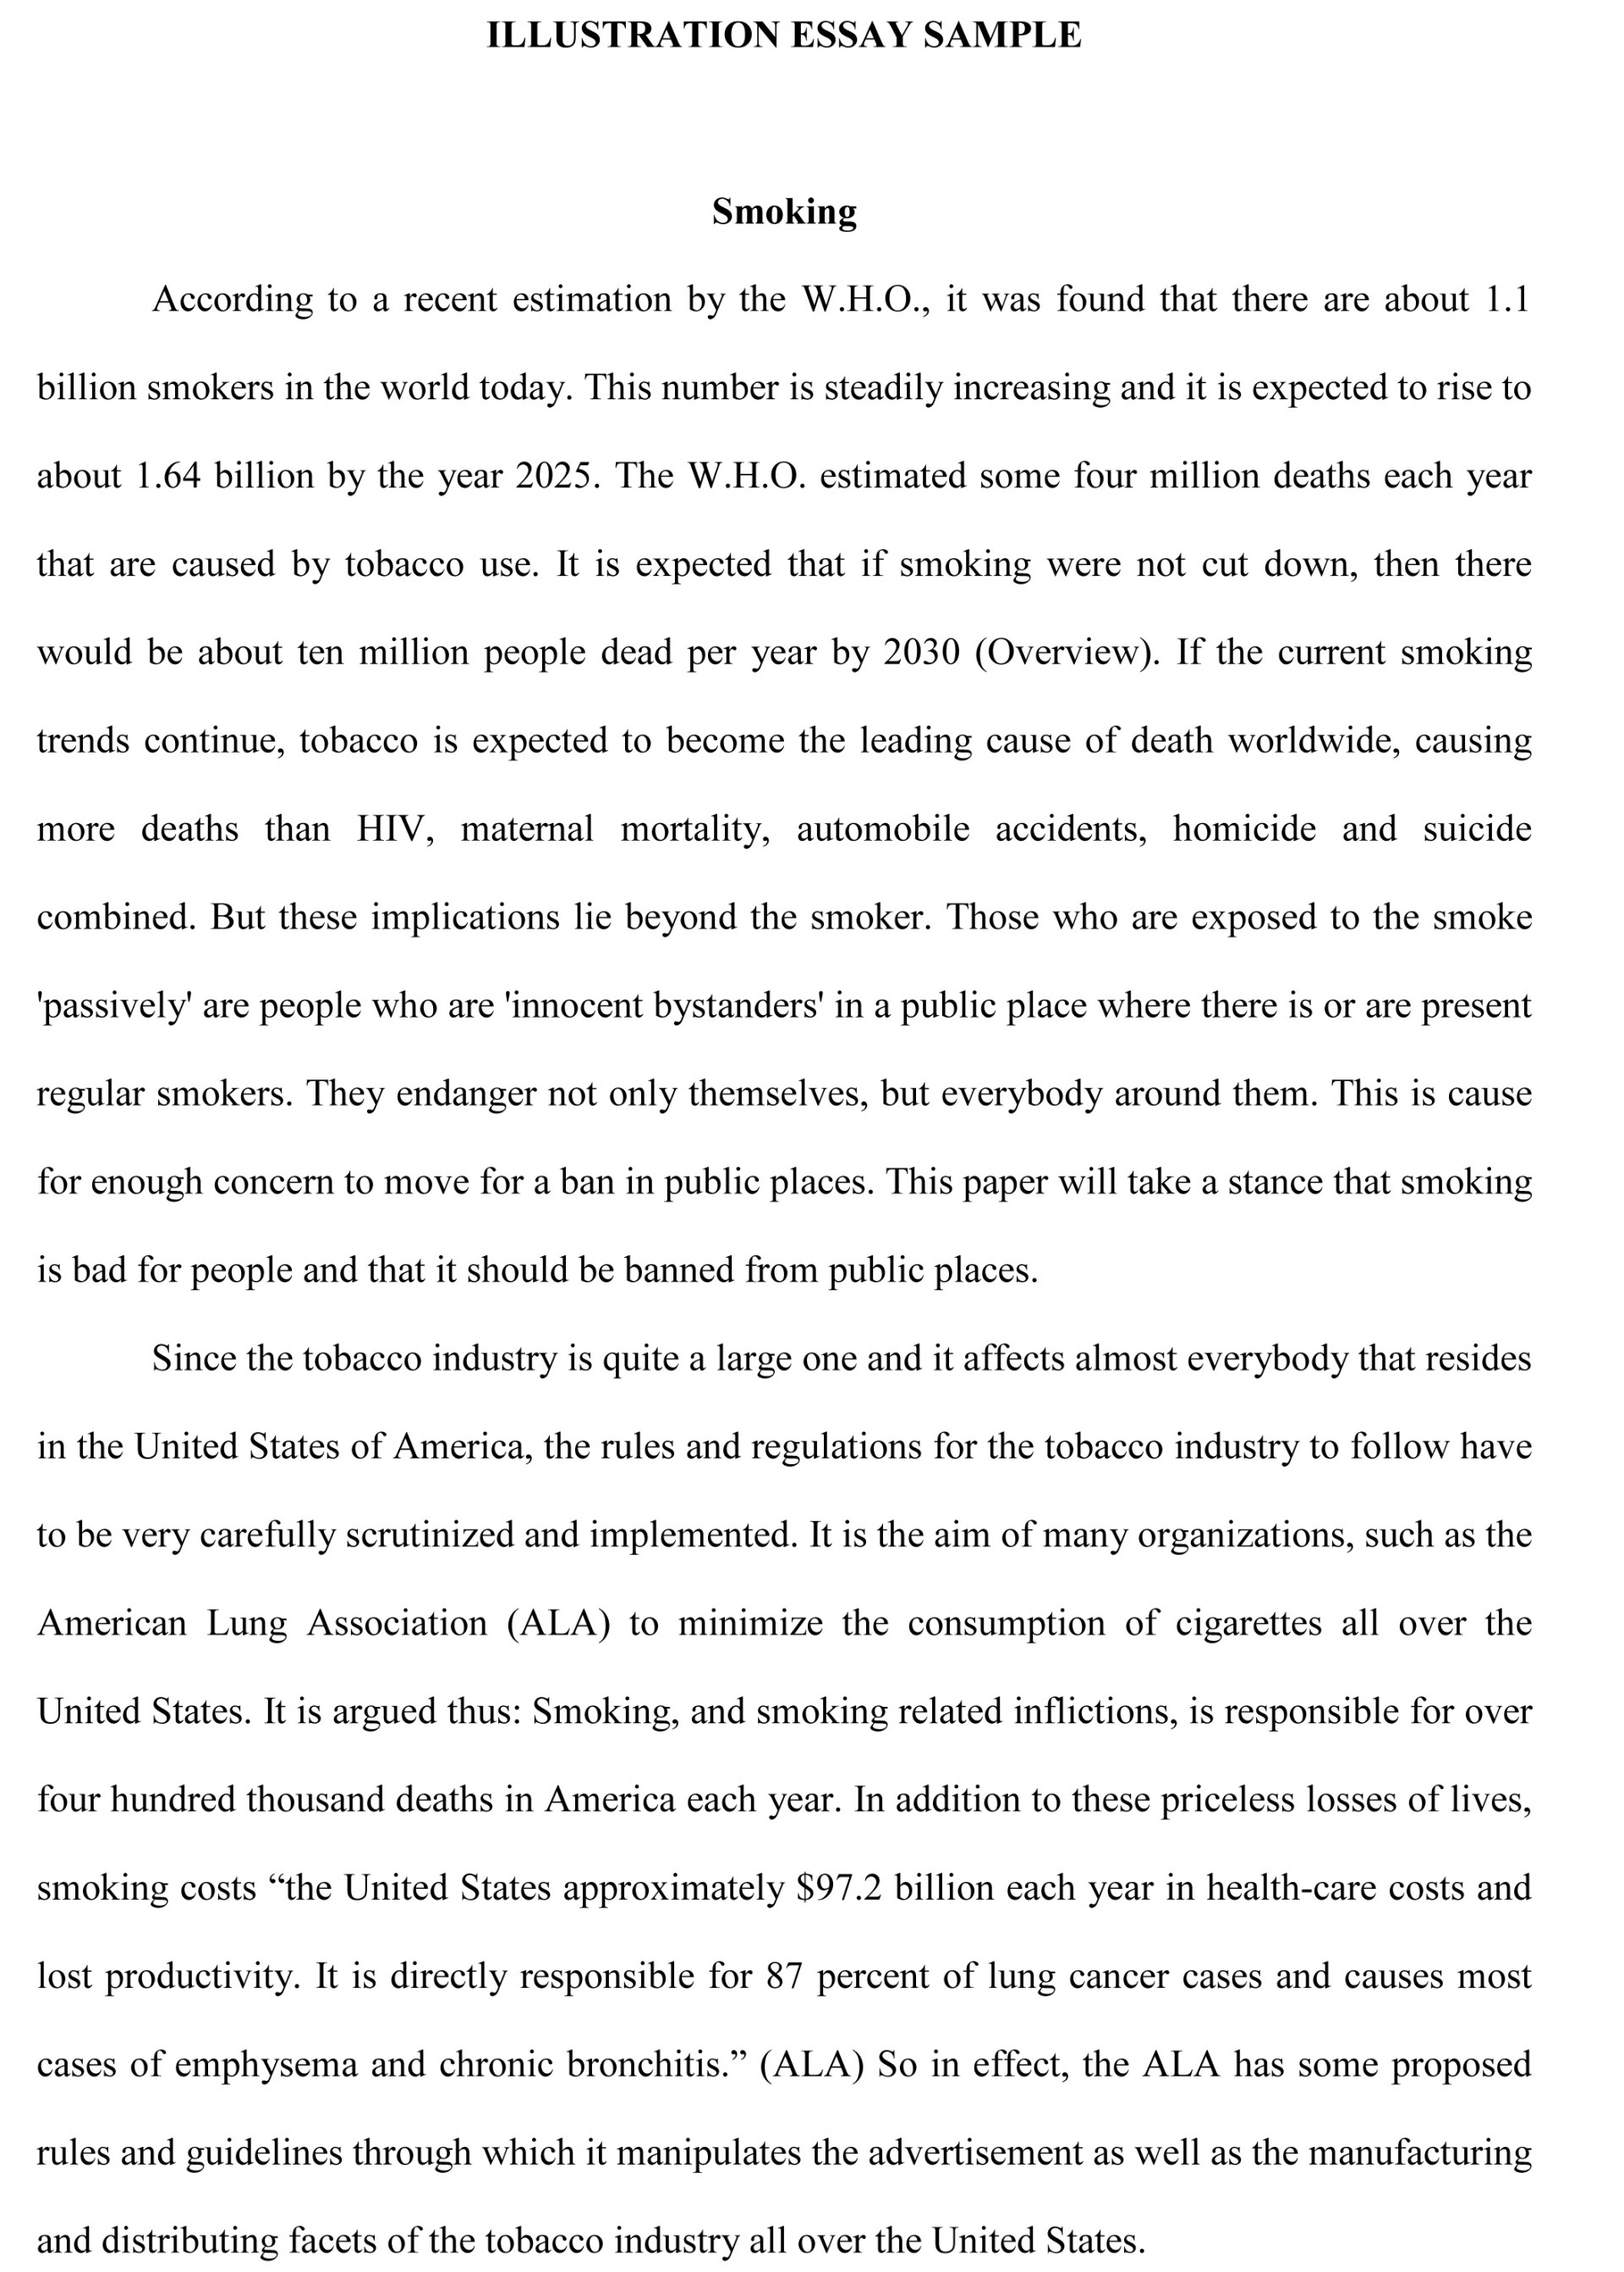 003 Writing Essay Illustration Sample Striking A Creative About Yourself College Outline 5 Steps To 1920